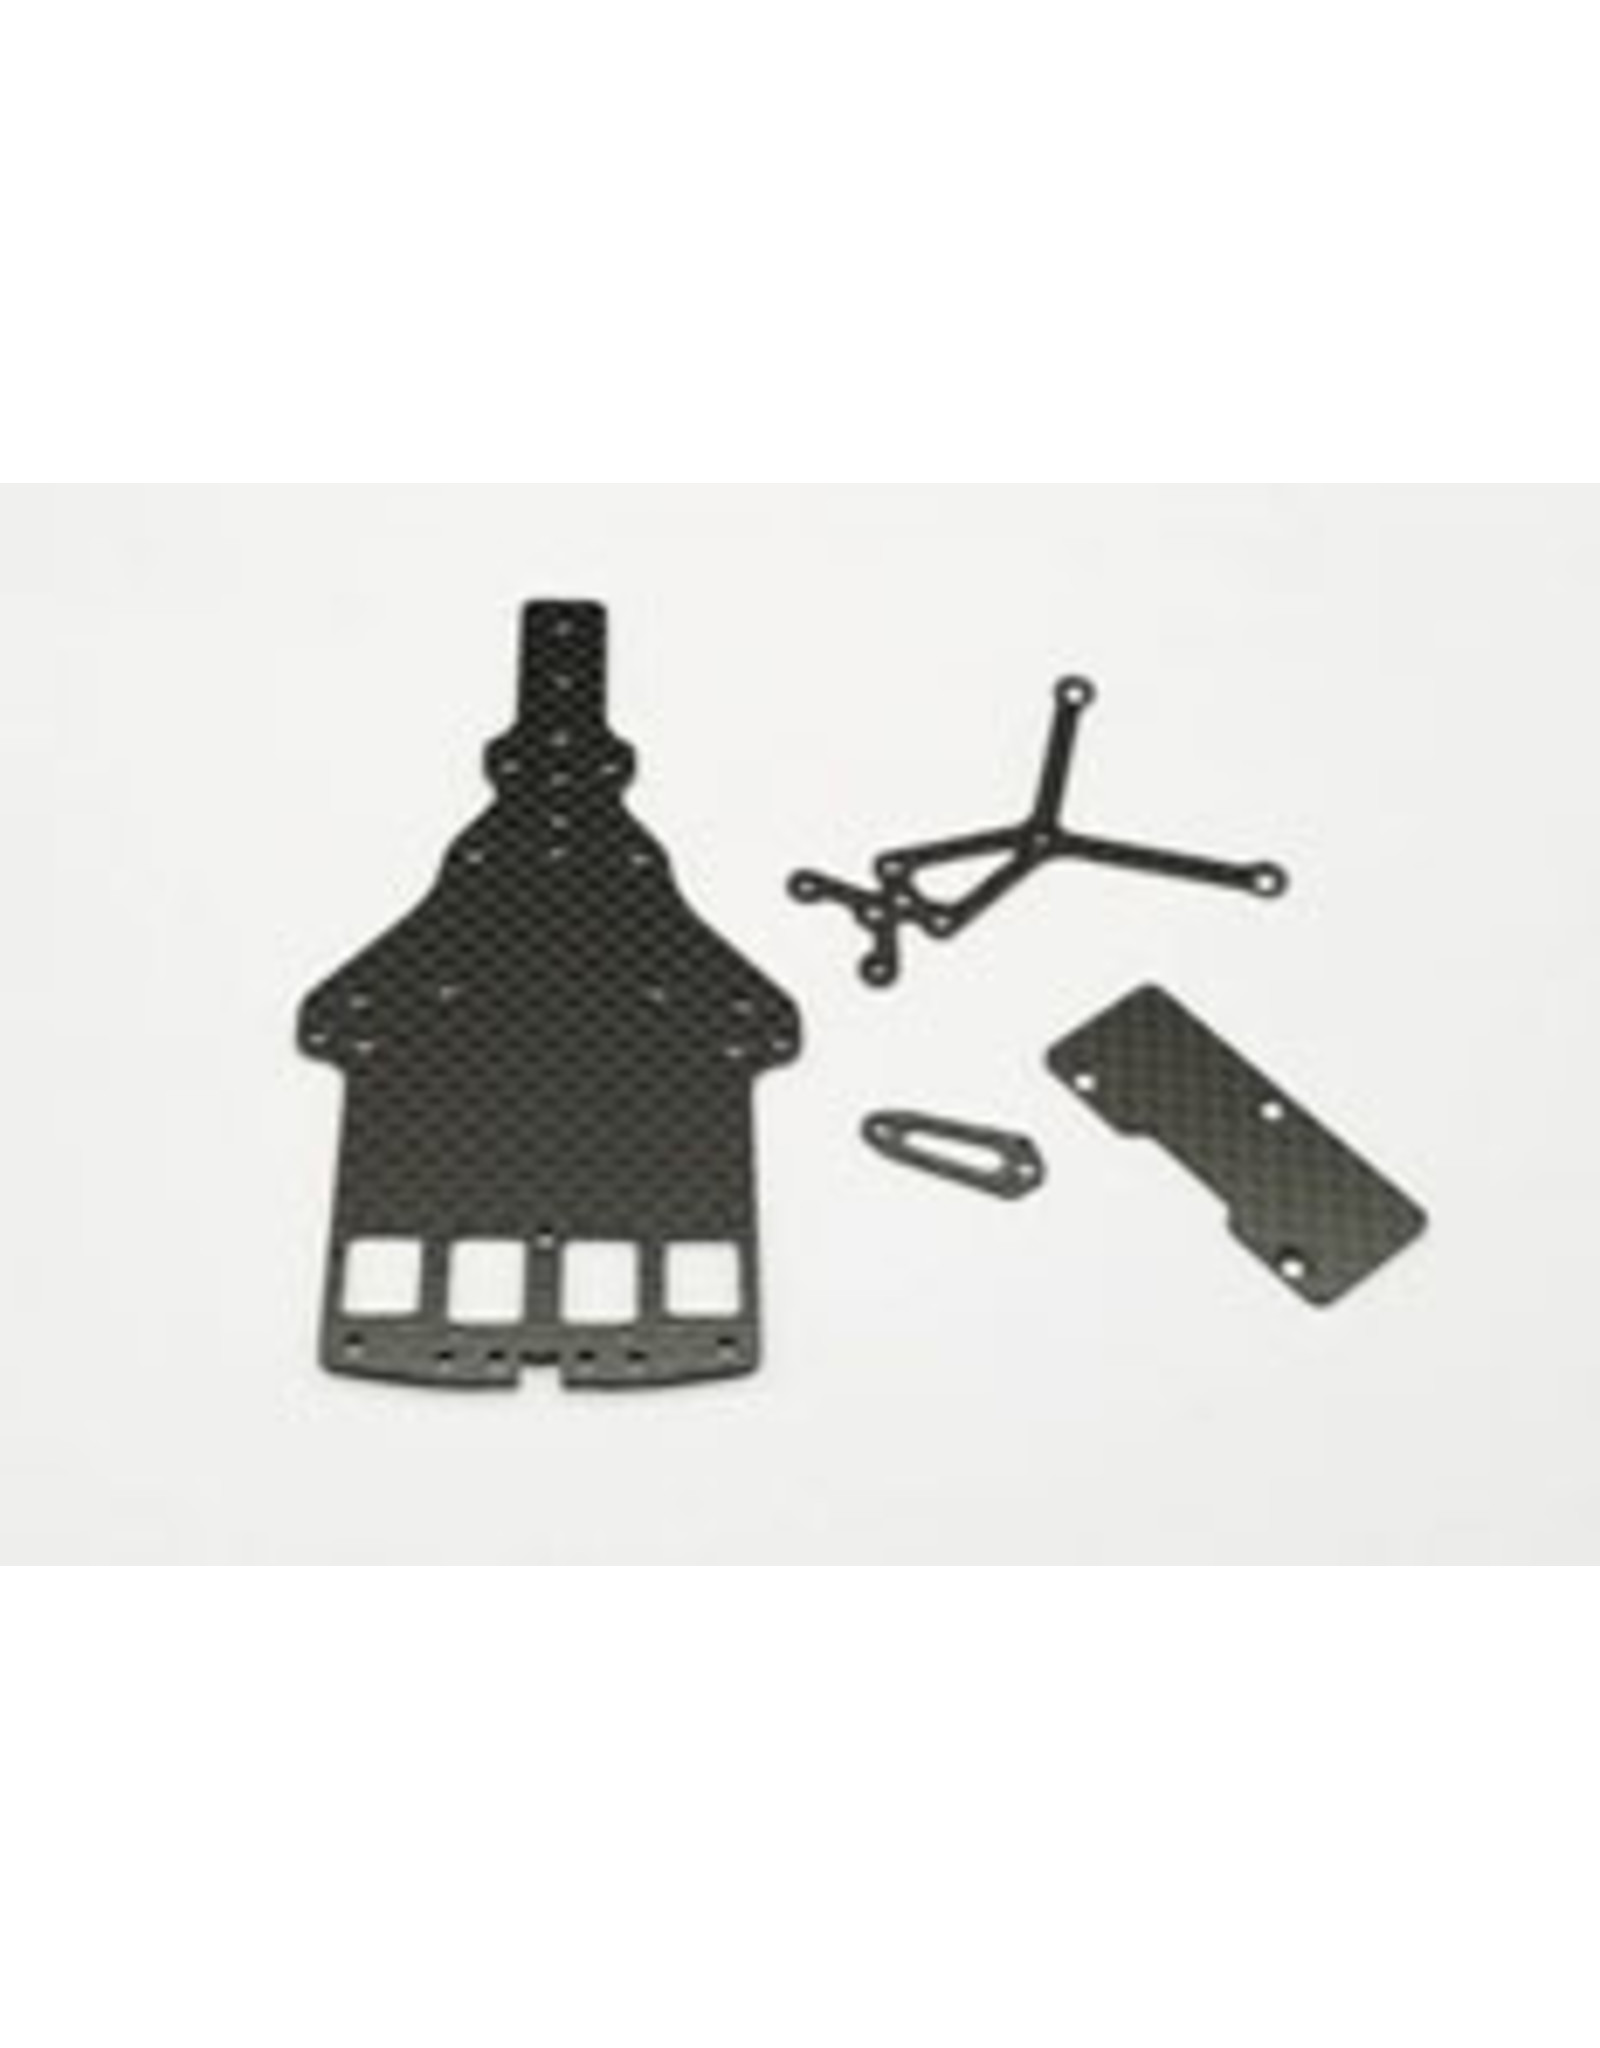 GL Racing GLF-1 CARBON MAIN CHASSIS,UPPER DESK &CROSS BRACE (GLF-S-032)